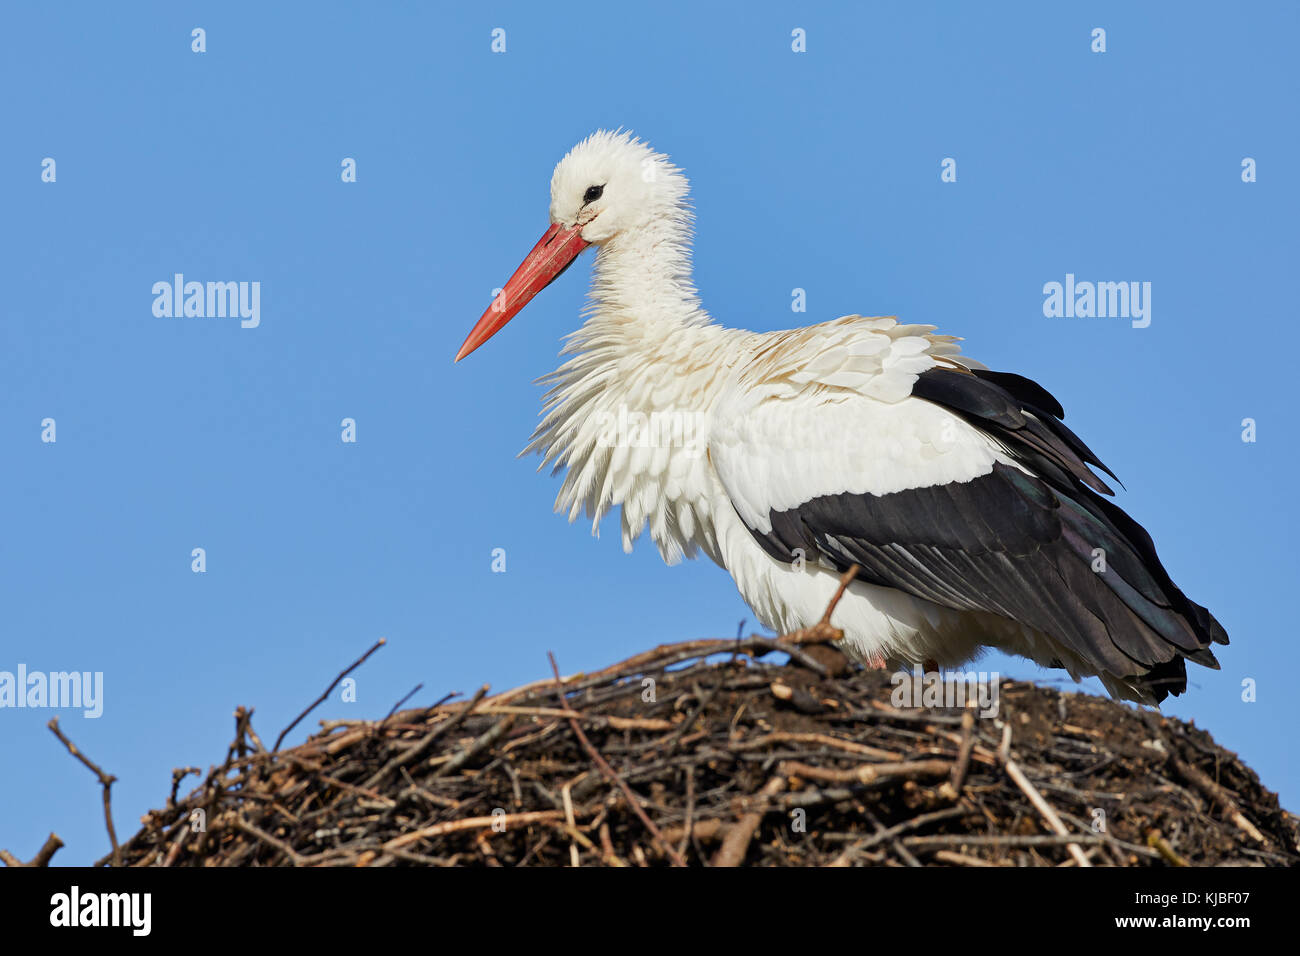 One stork on a nest against a clear blue sky - Stock Image